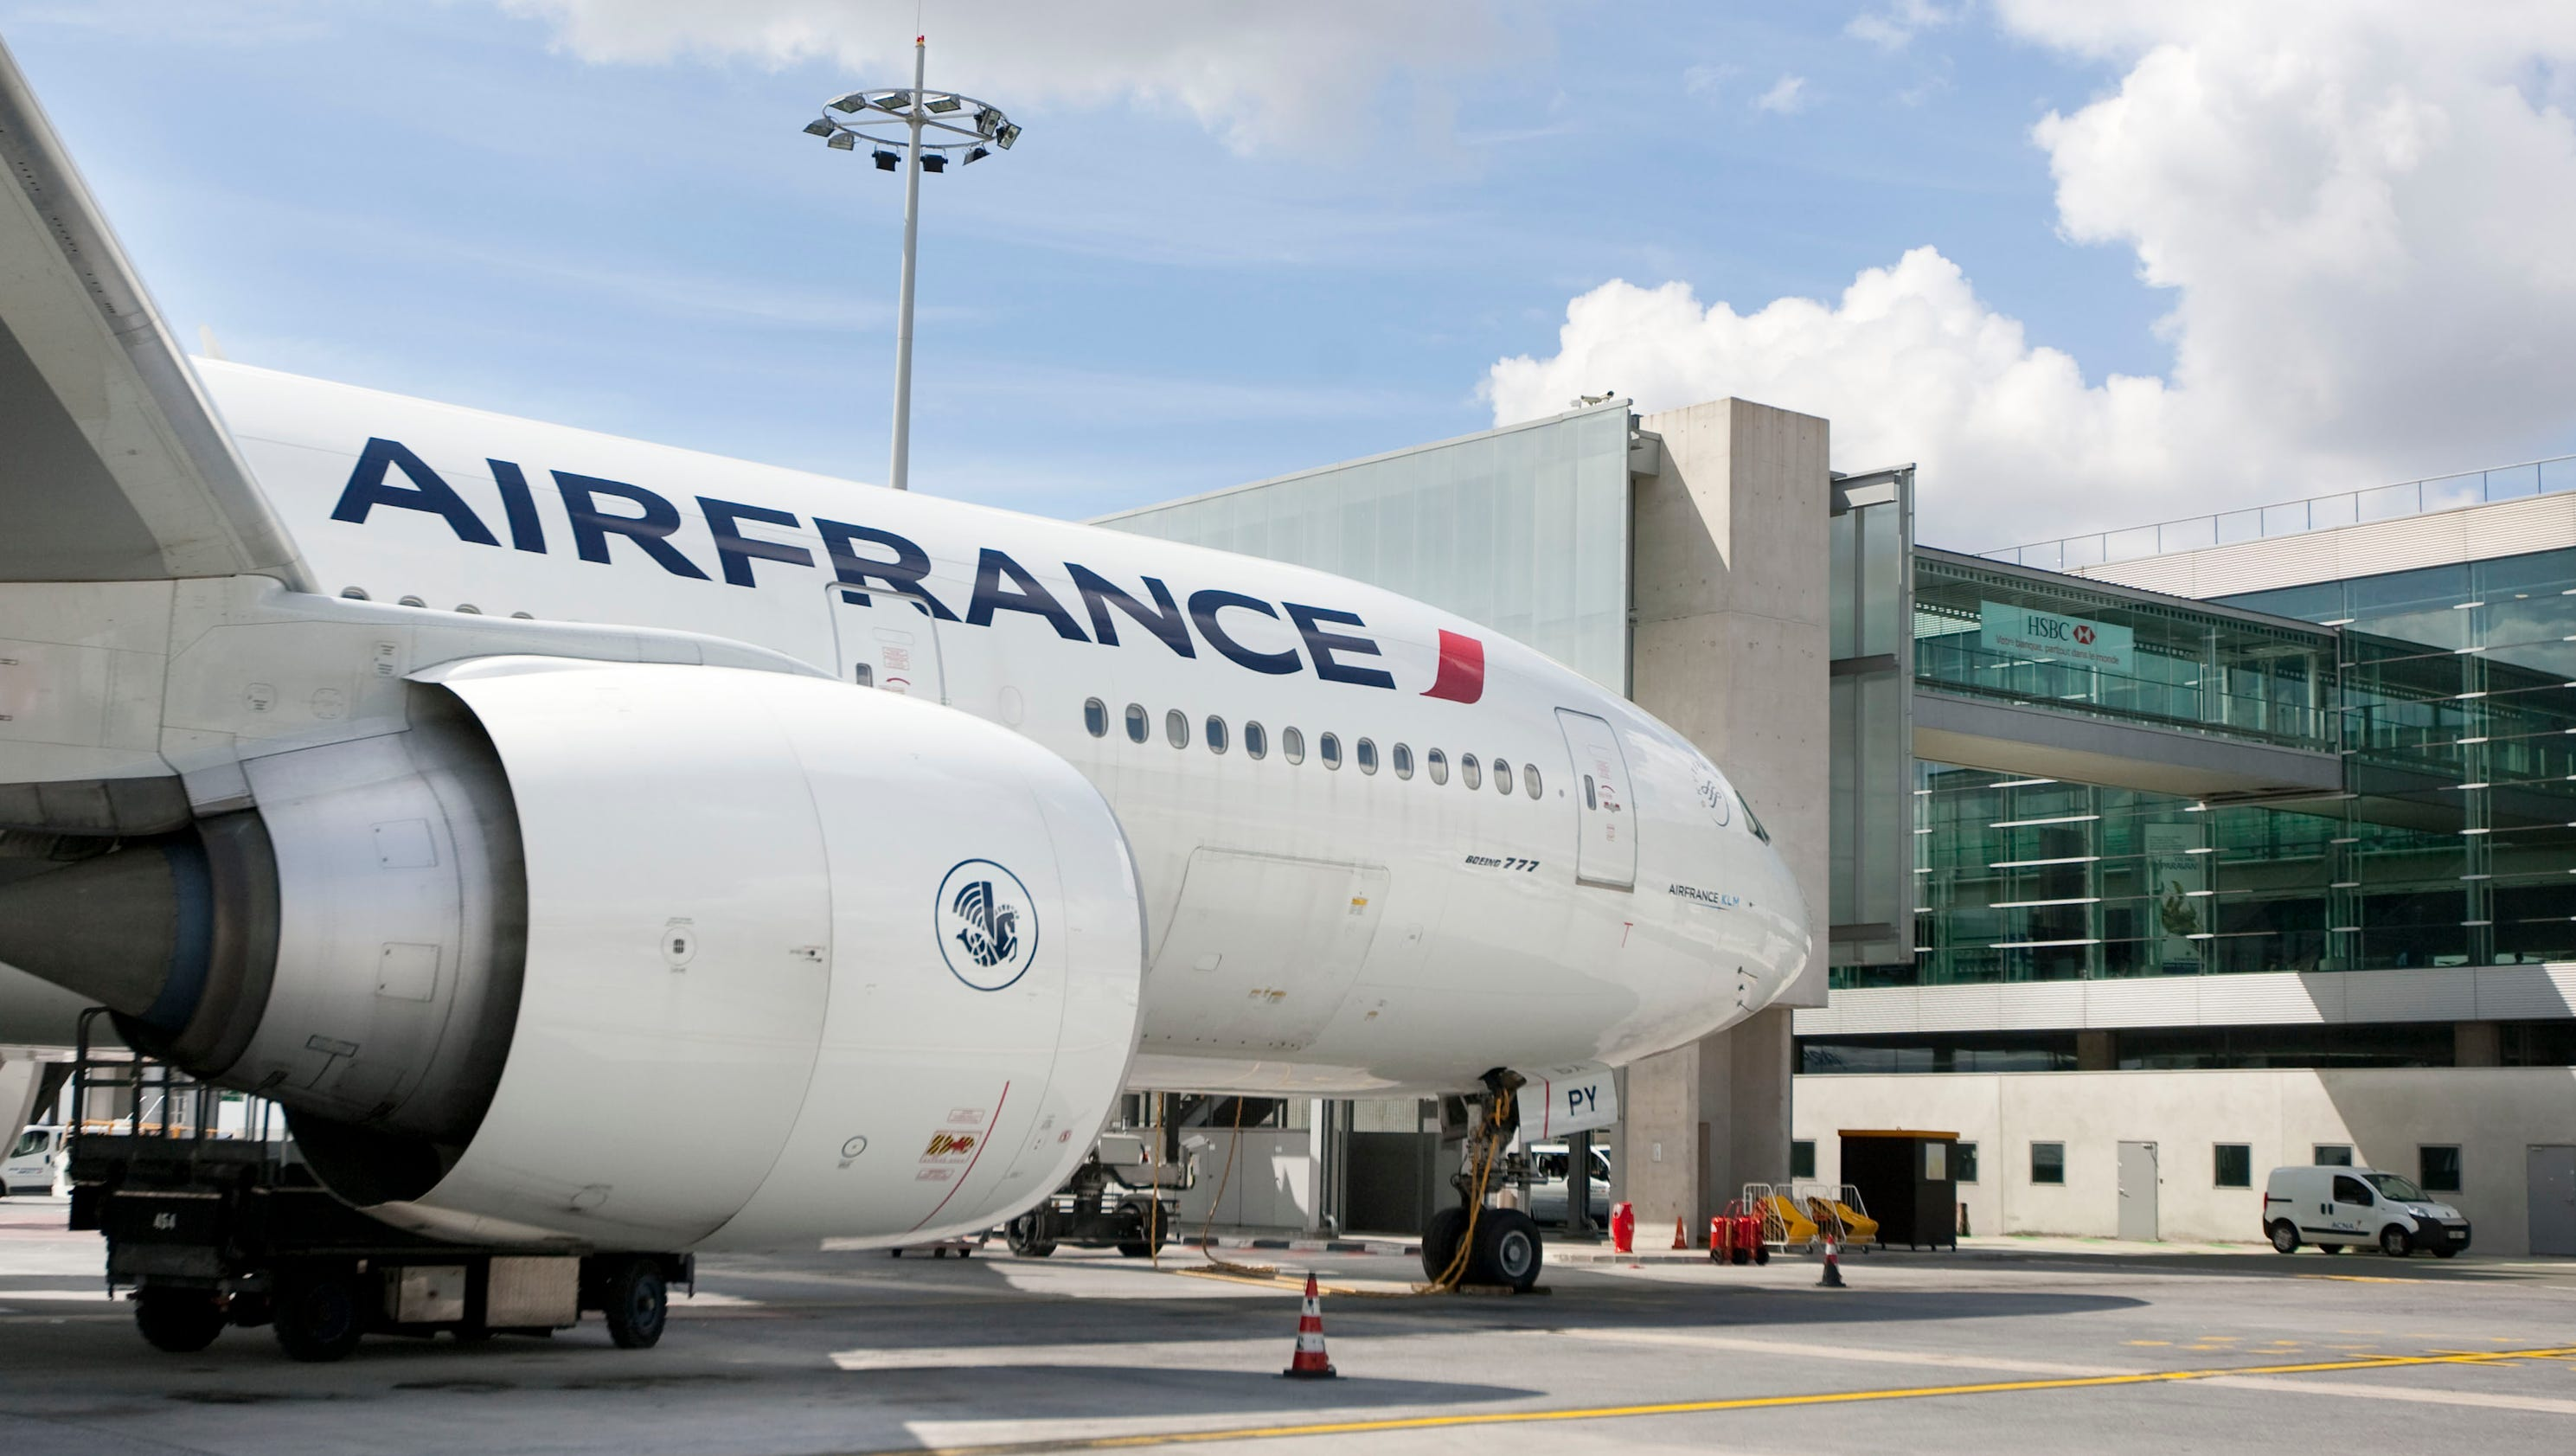 Air france flight from mauritius to paris diverts over for Flights to paris today